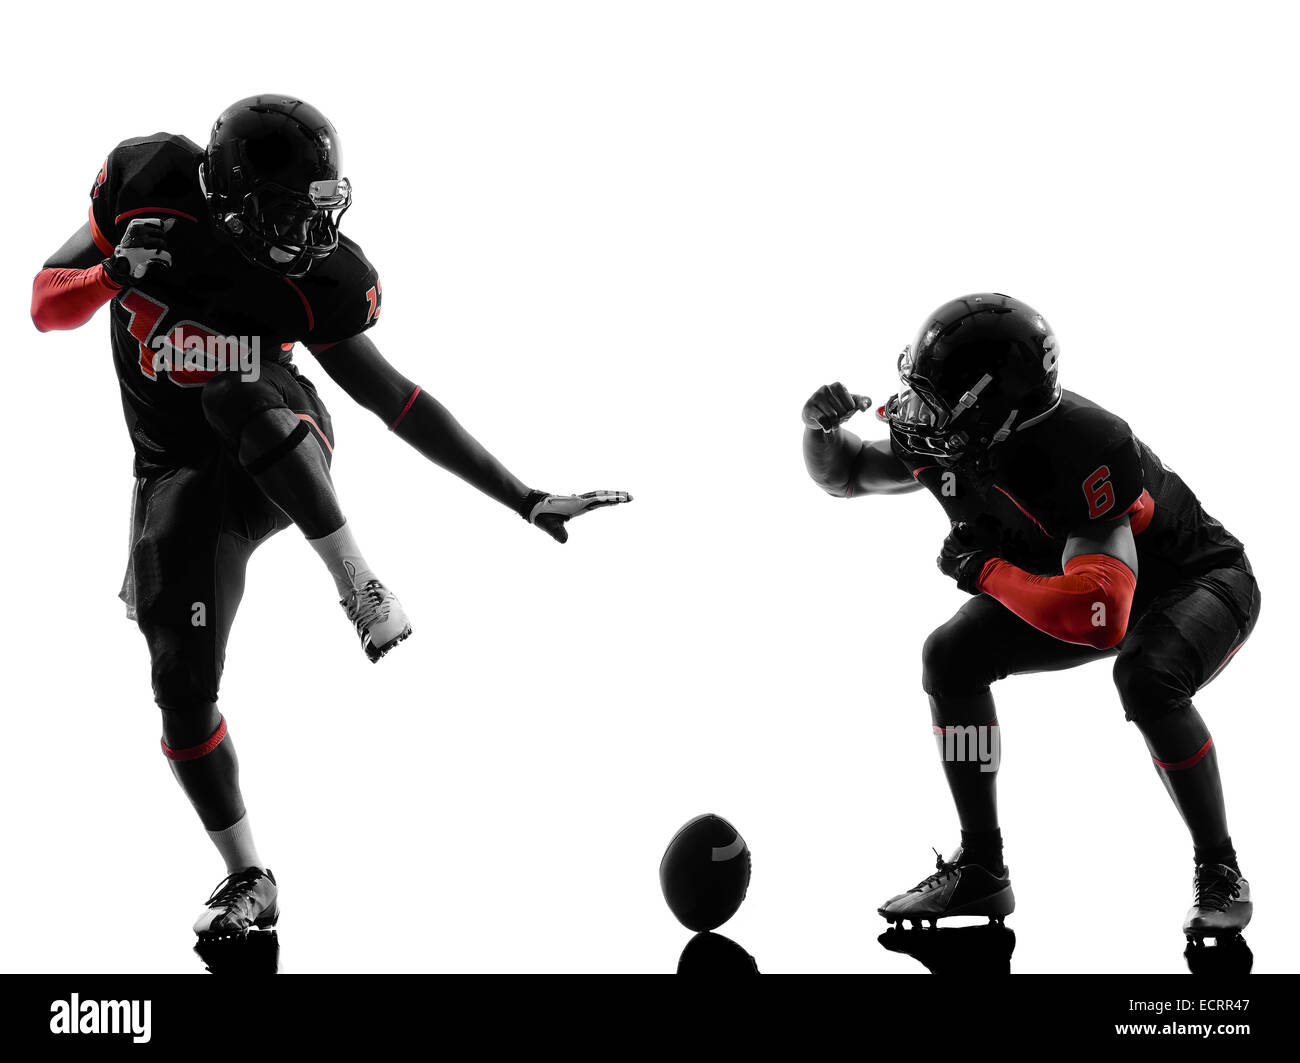 two american football players in touchdown celebration silhouette shadow on white background - Stock Image